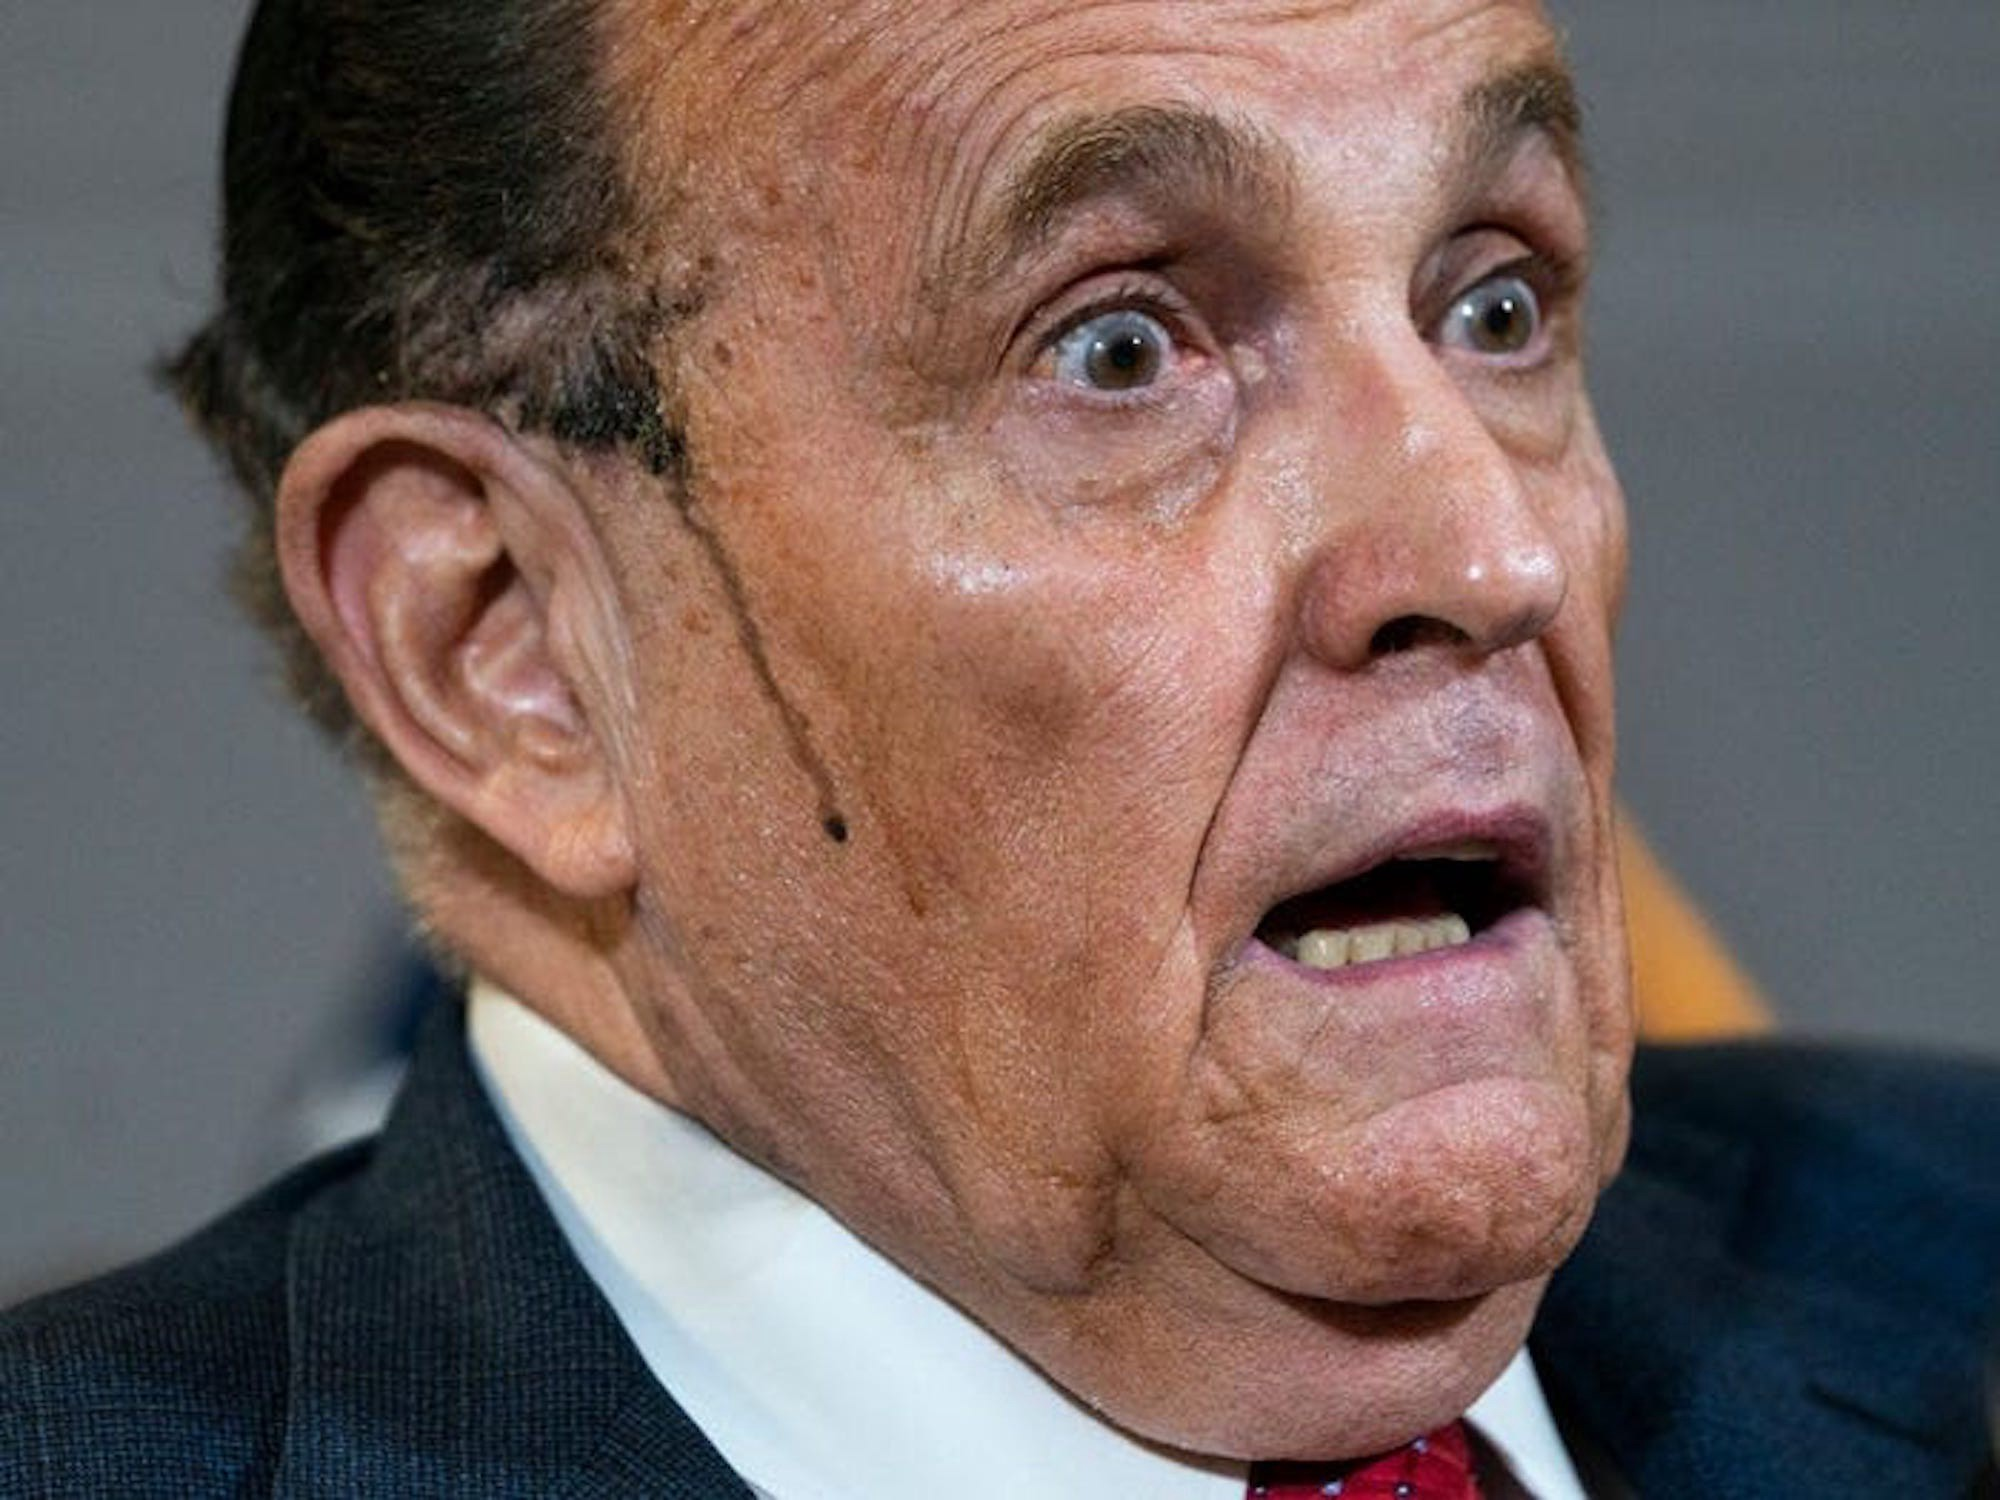 Former New York City Mayor and current Trump lawyer Rudy Giuliani.